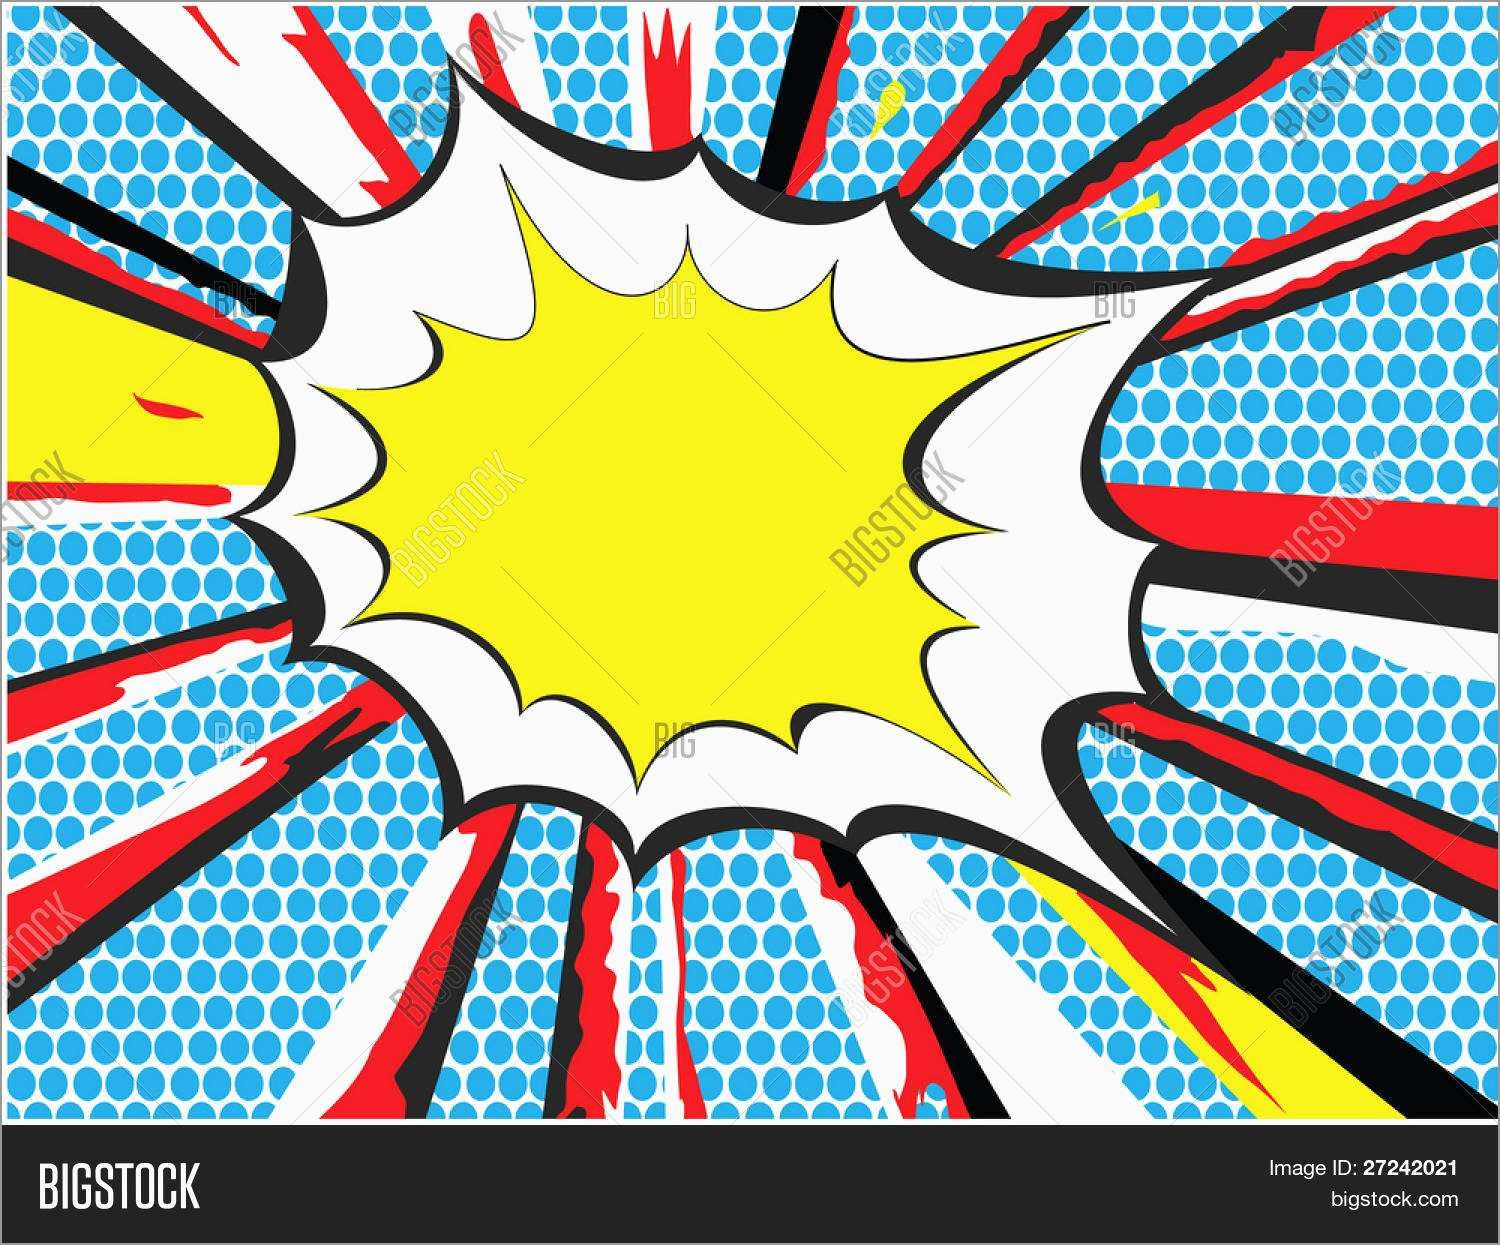 Free Comic Book Style Powerpoint Template Best Explosions Clipart In Comic Powerpoint Template